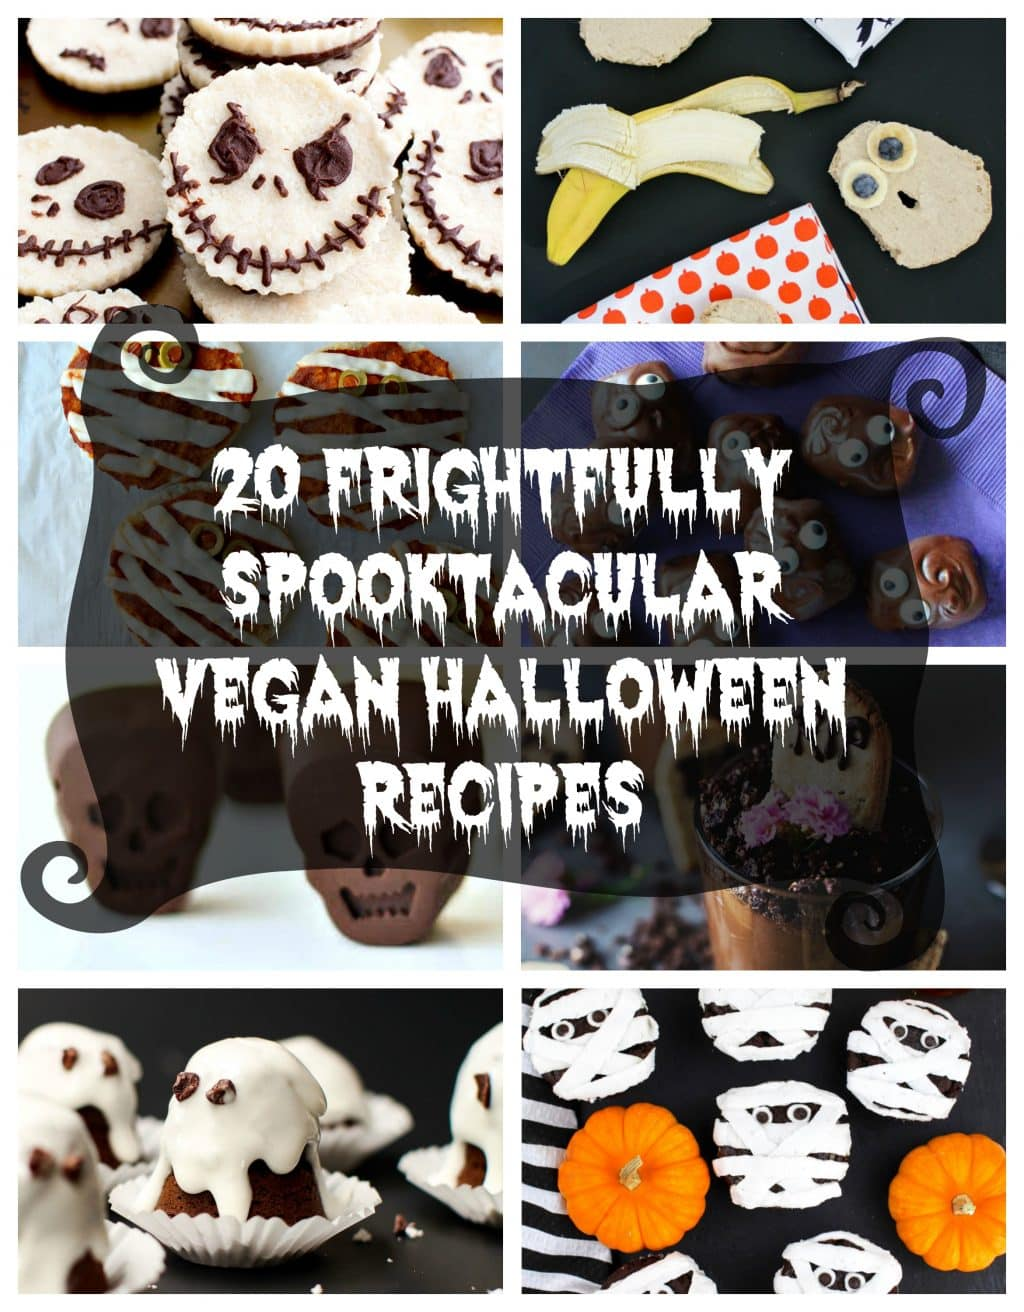 Make this Halloween one to remember with 20 Frightfully Spooktacular Vegan Halloween Recipes! You will find everything from cute to downright disgusting!